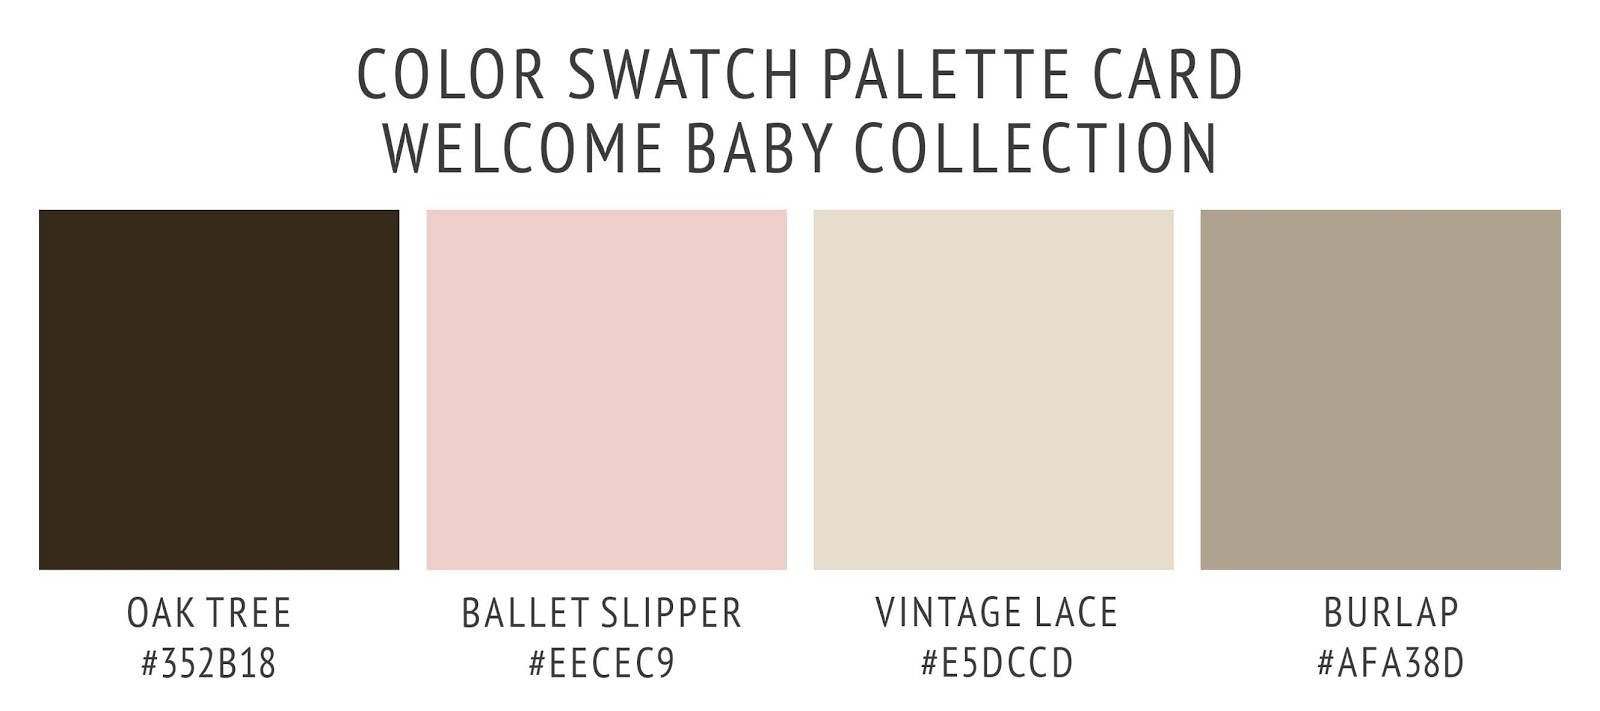 Welcome baby farmhouse collection's color palette card. With swatches and color hex codes. In vintage lace ivory, oak tree brown, ballet slipper pink, and burlap tan color scheme.